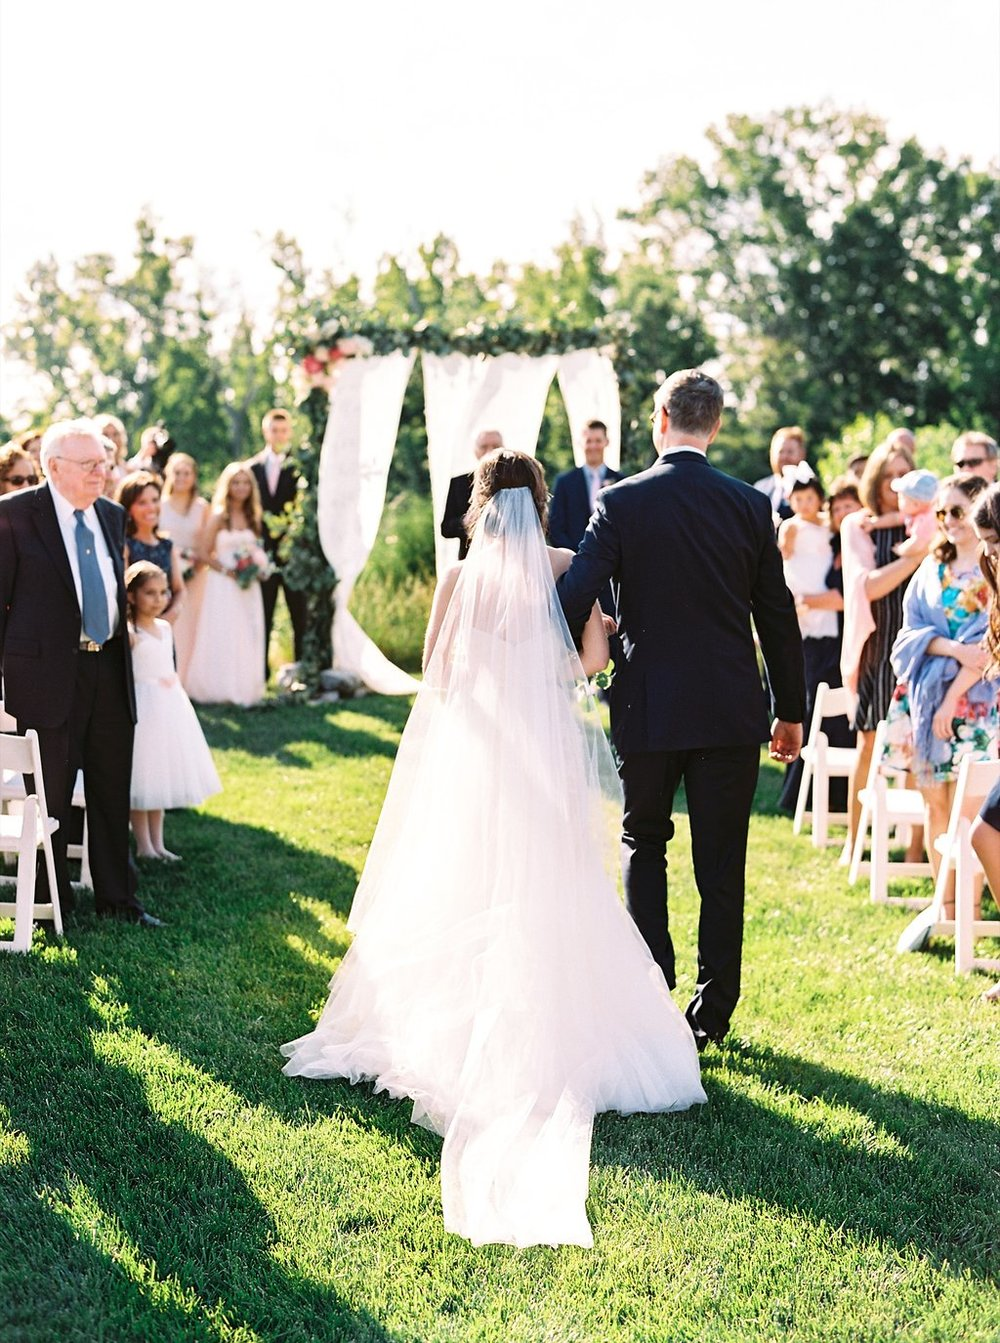 Bride Walking Down the Aisle at an Outdoor Southern Wedding Ceremony | Blush and Navy Wedding with Fuchsia, French Blue and Gold Accents | Simply Jessica Marie's Southern Wedding at Gettysvue Golf Course and Country Club in Knoxville Tennessee | Photo by Perry Vaile Photography